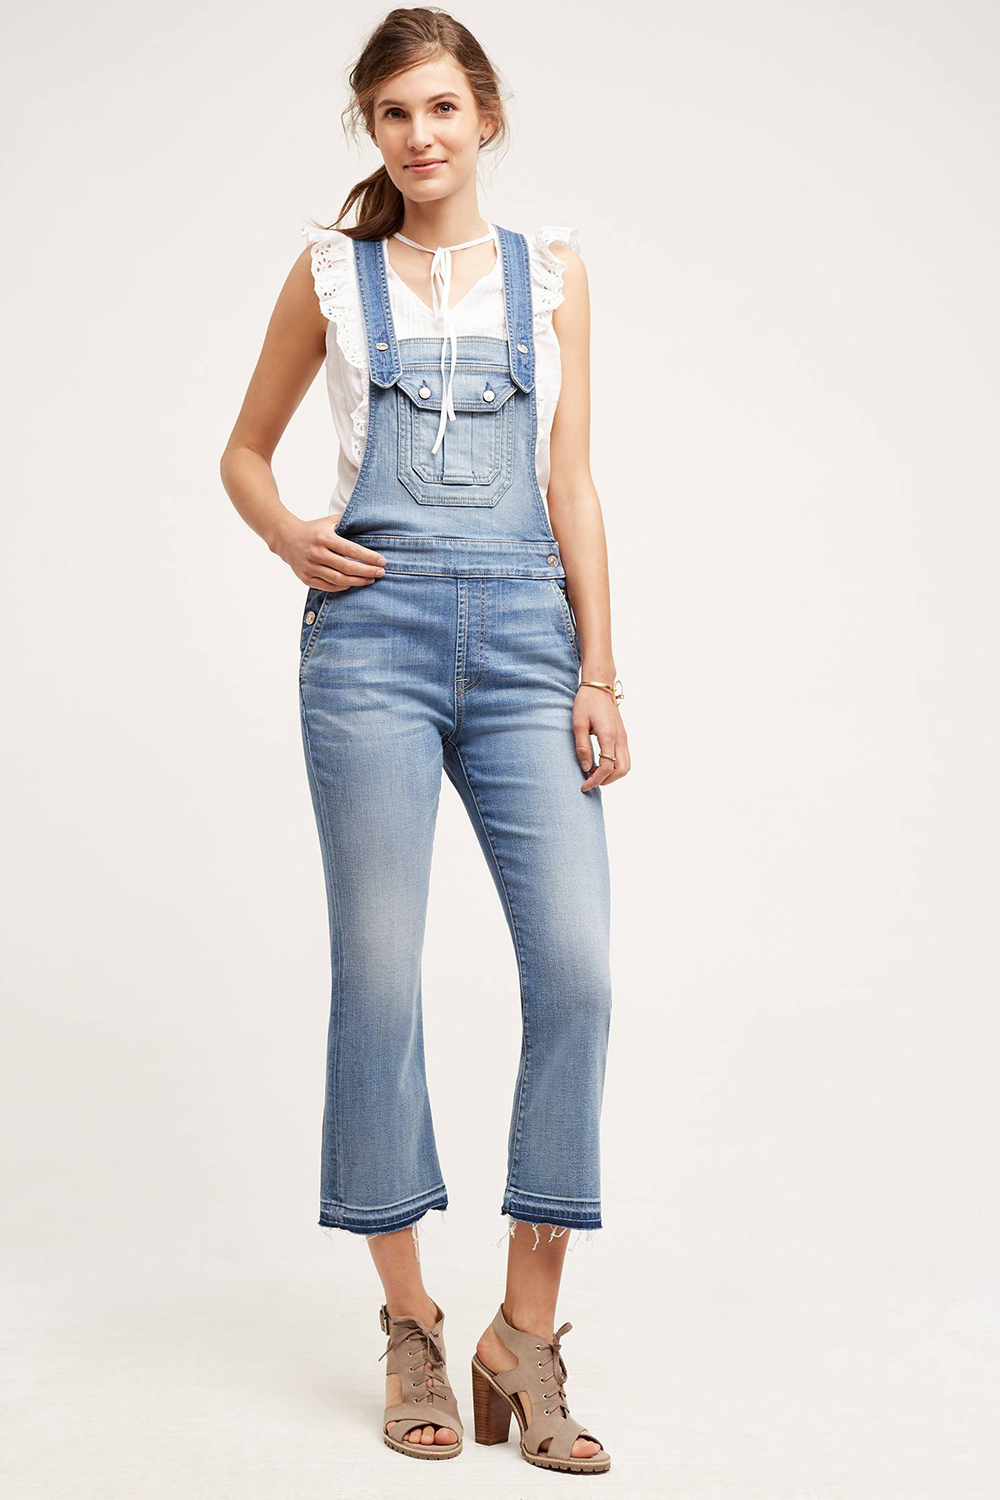 7 For All Mankind Cropped Boot Overalls - The Overall Trend